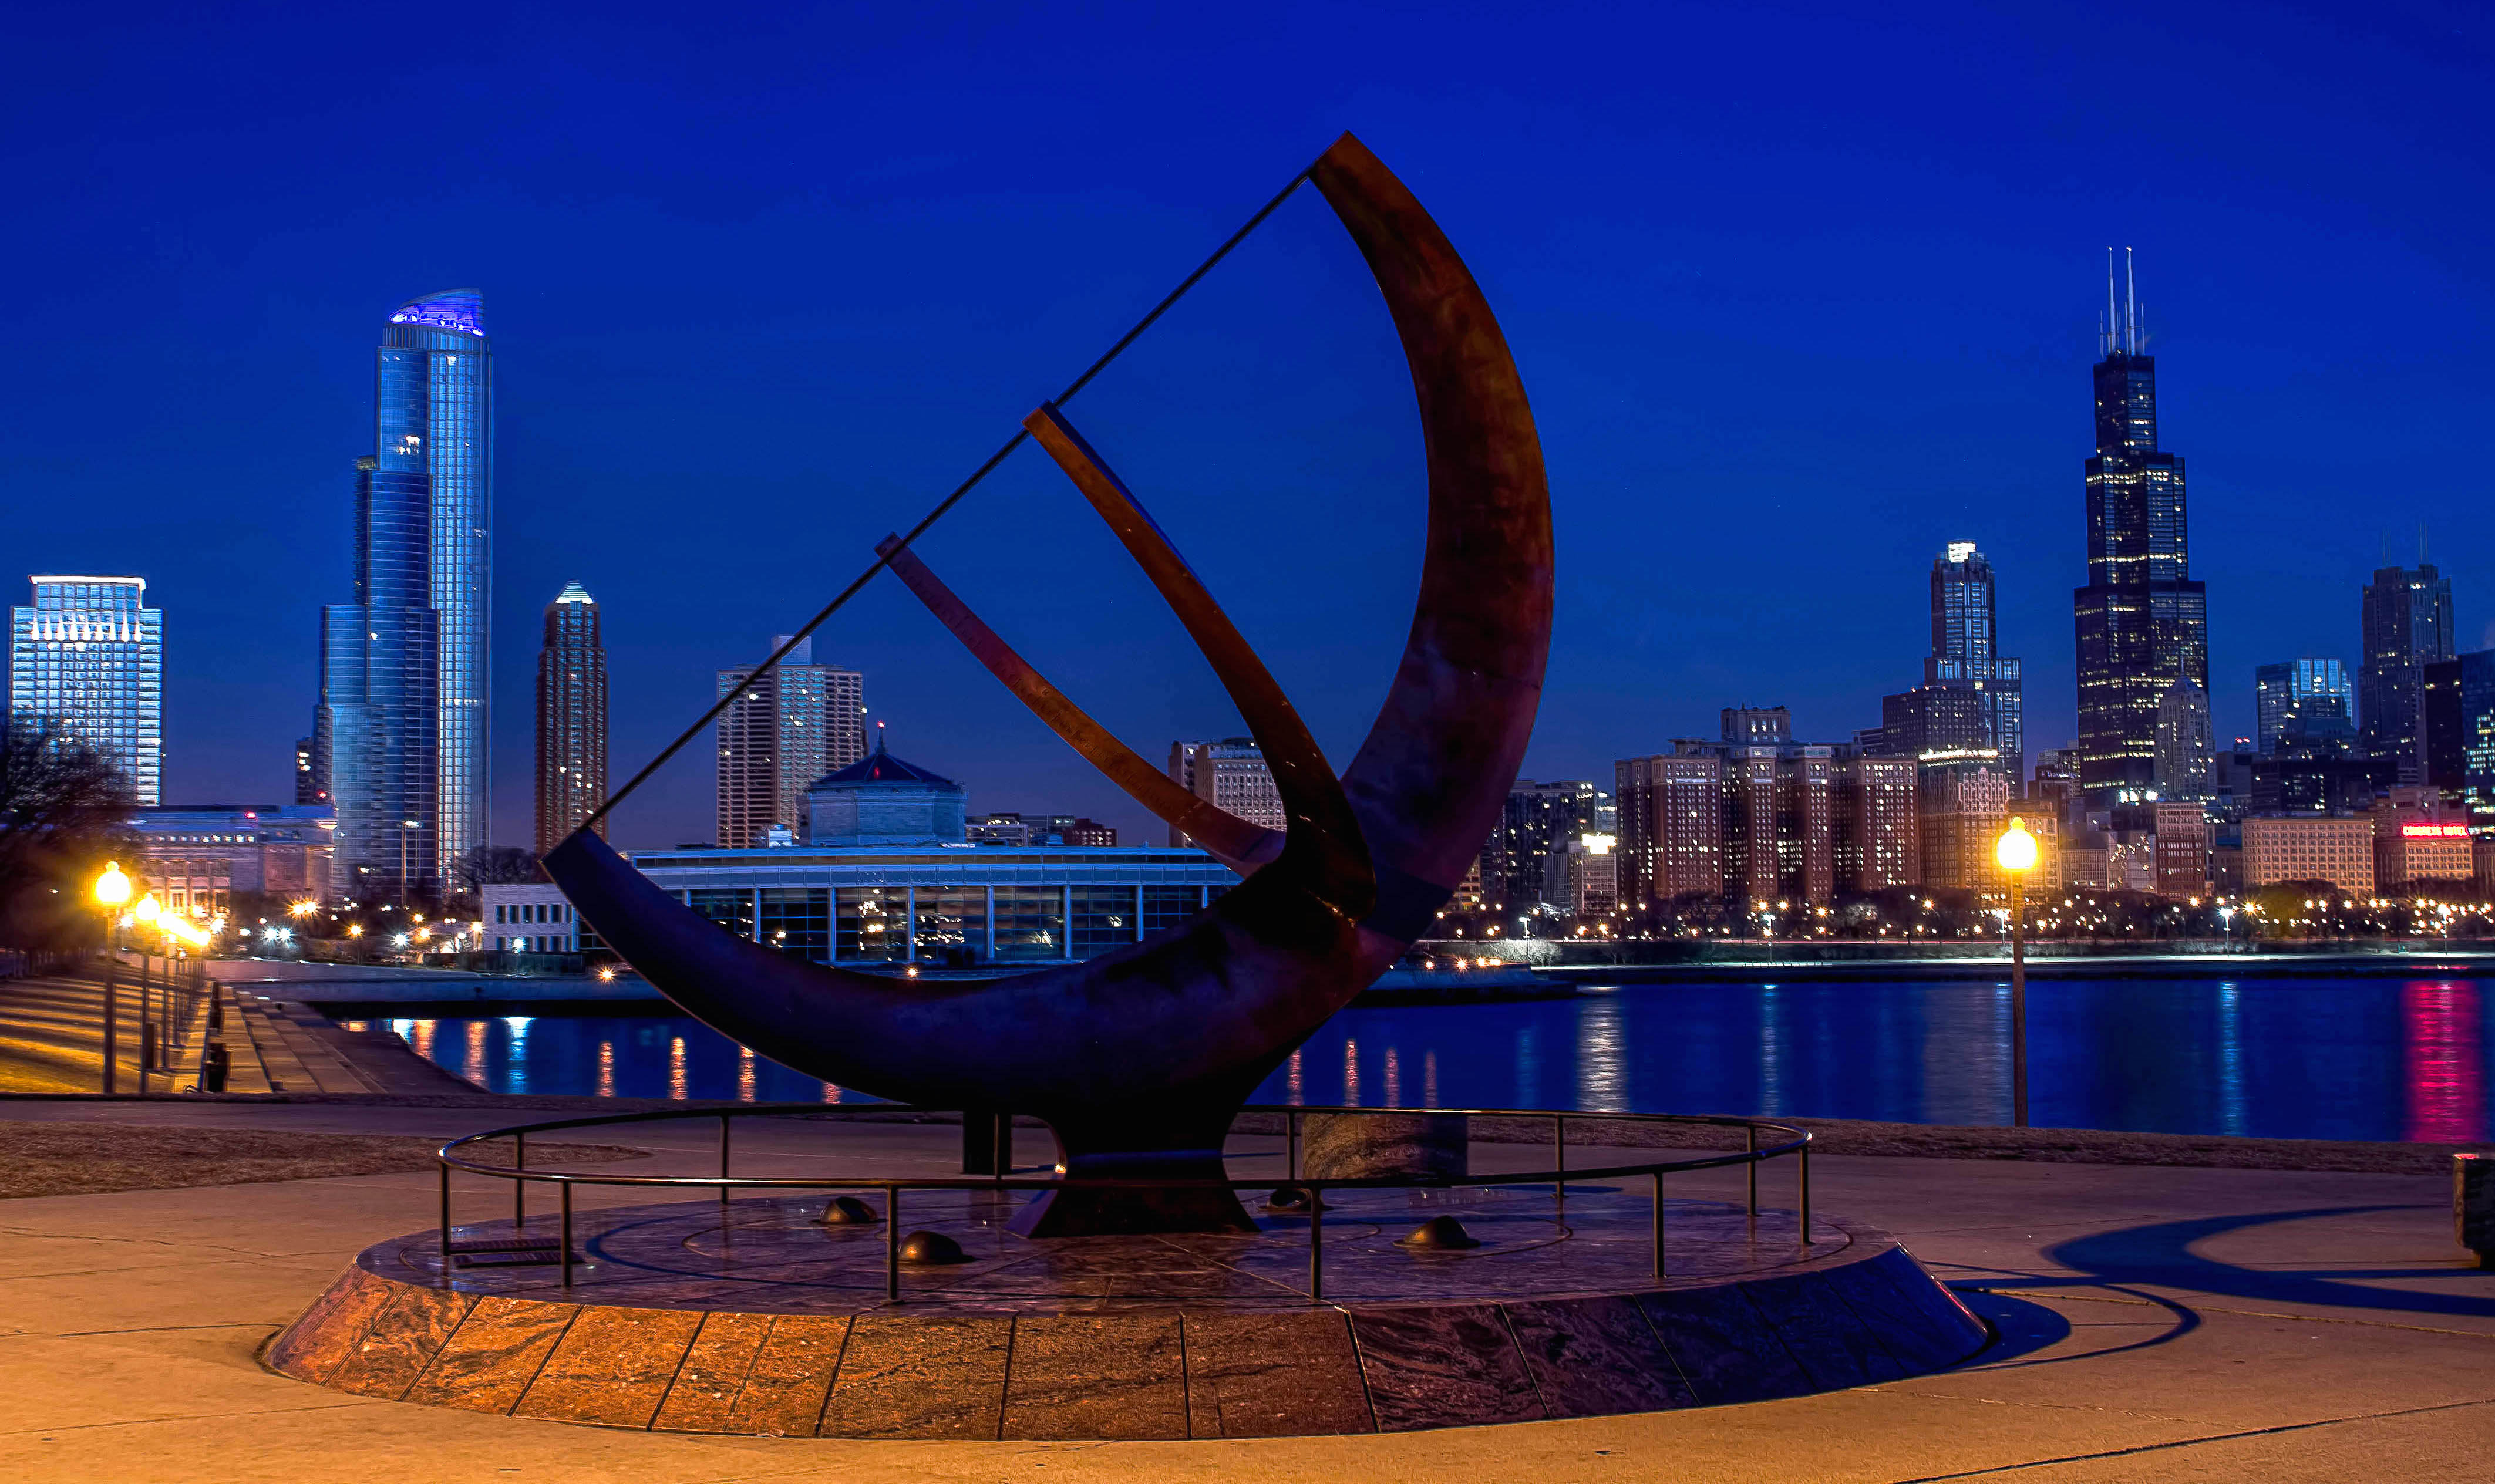 7 Affordable First Date Ideas in Chicago - Adler Planetarium